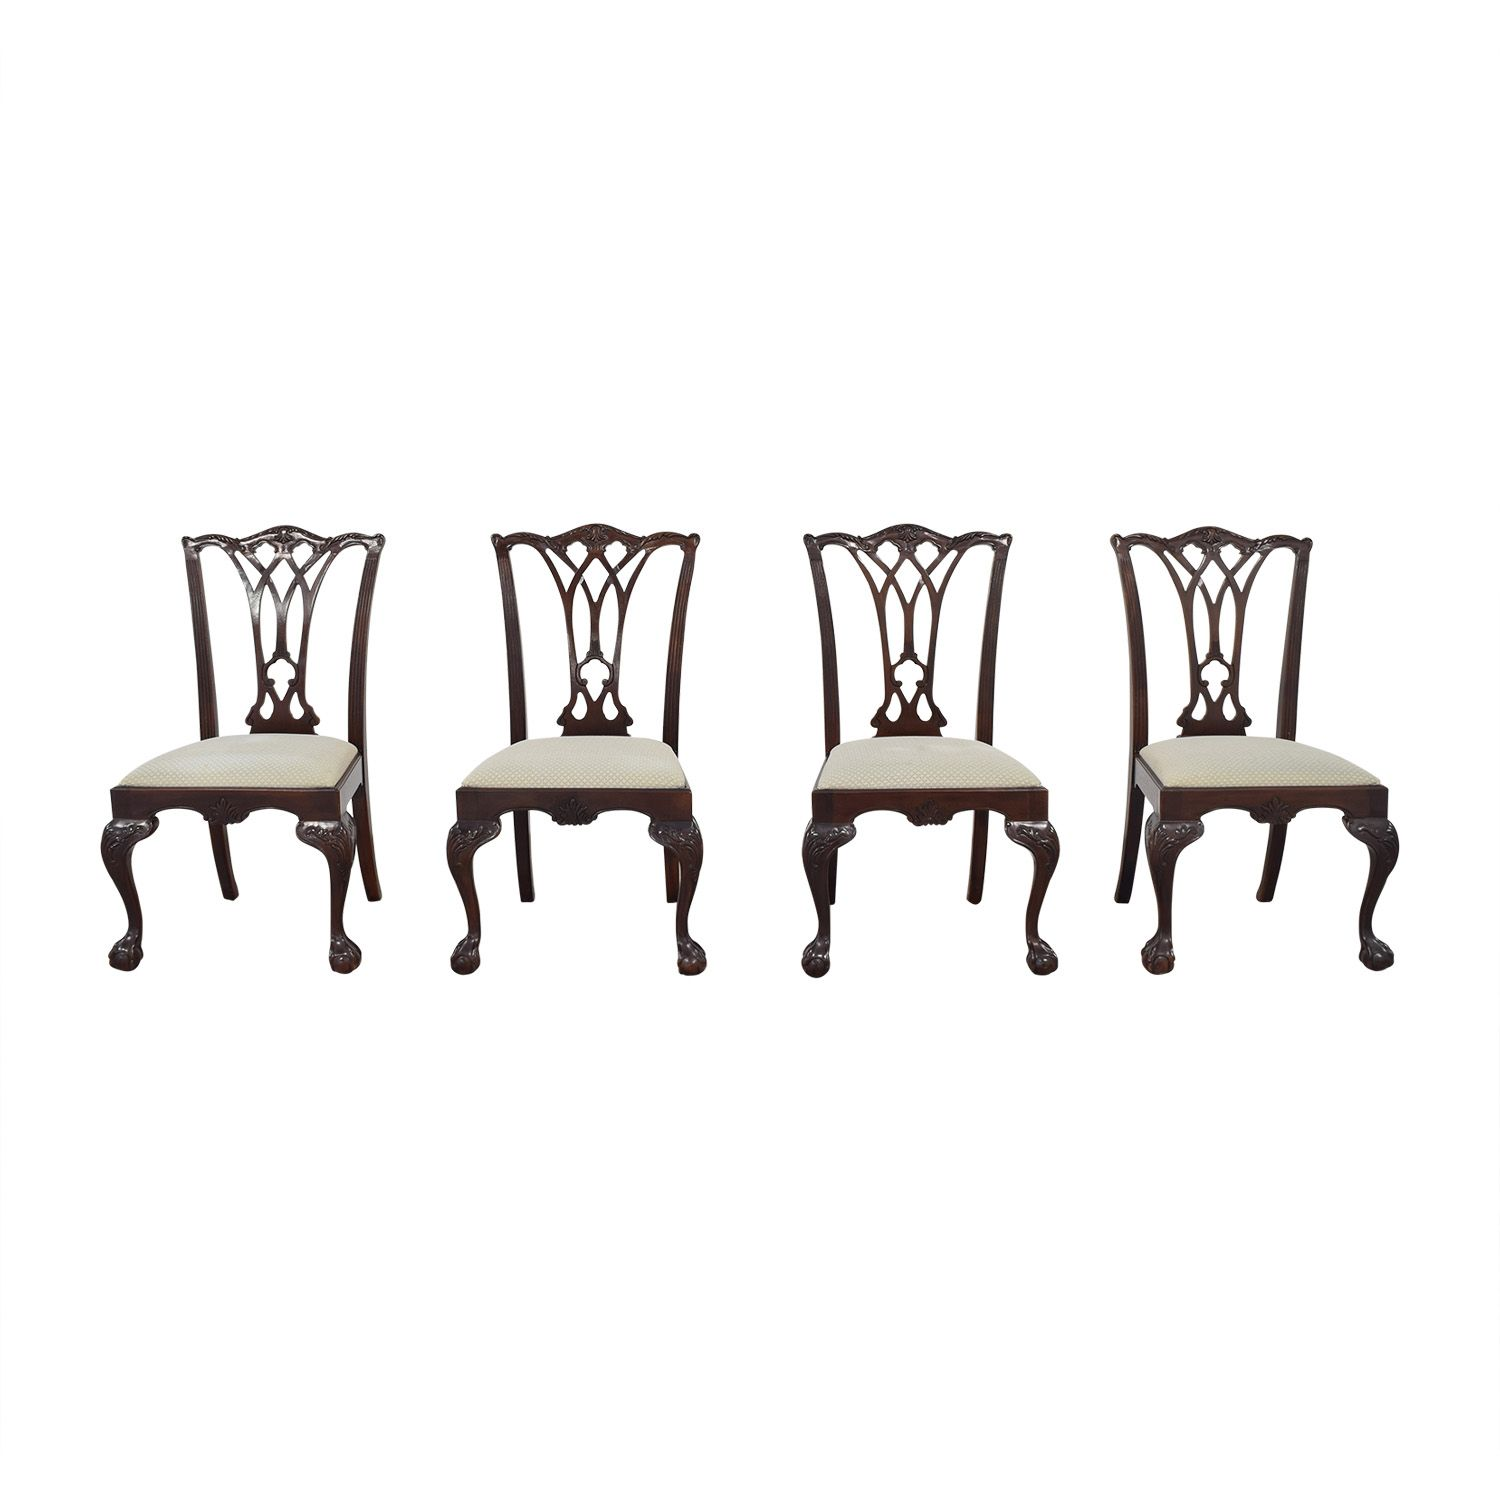 Drexel Heritage Armless Dining Chairs Dining Chairs Chair Dining